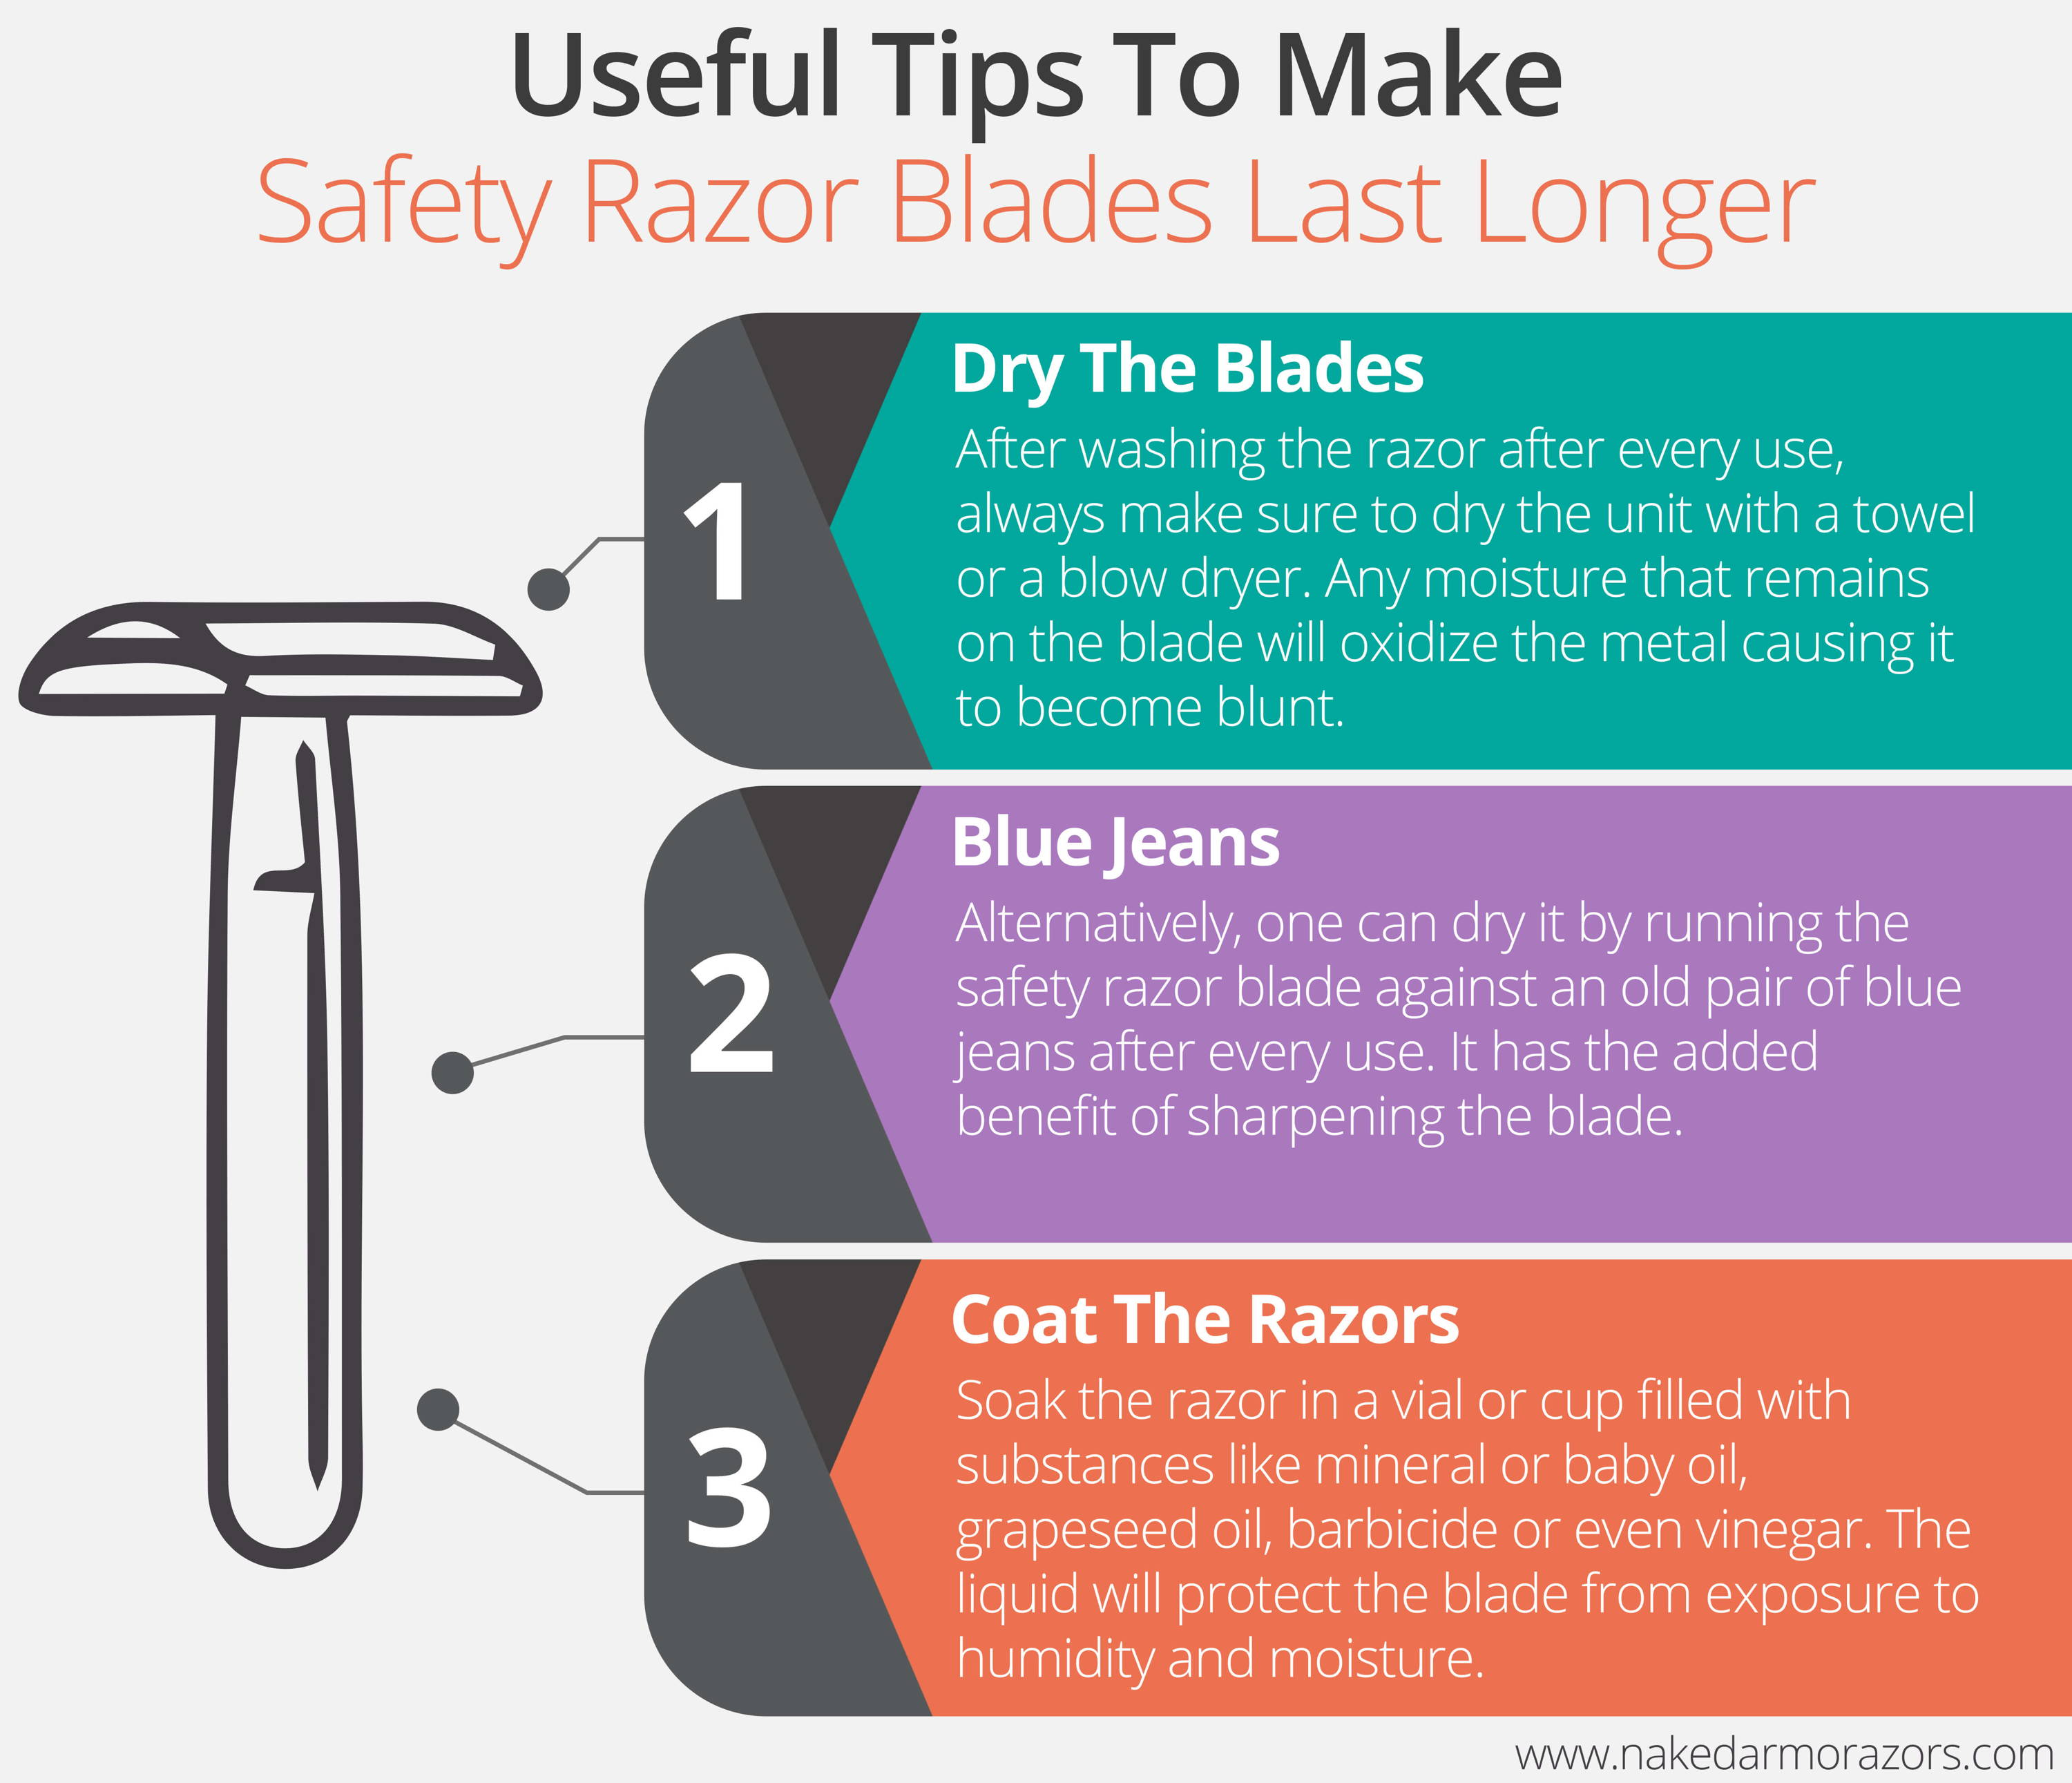 Useful Tips To Make Safety Razor Blades Last Longer